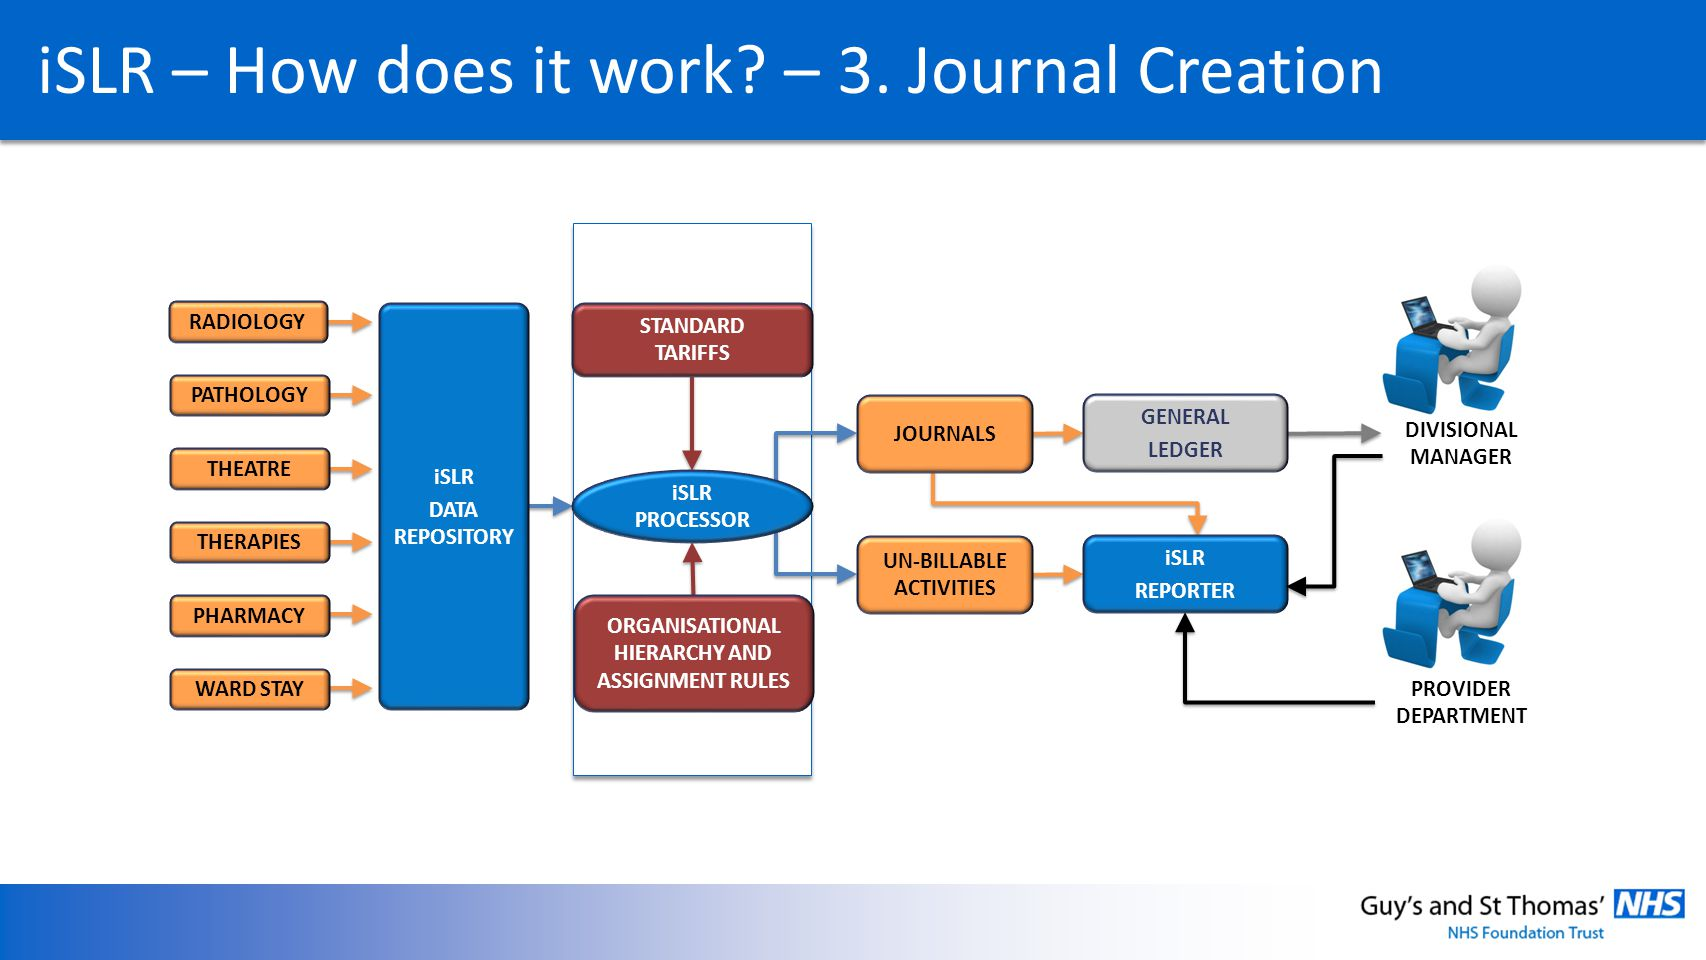 iSLR – How does it work – 3. Journal Creation